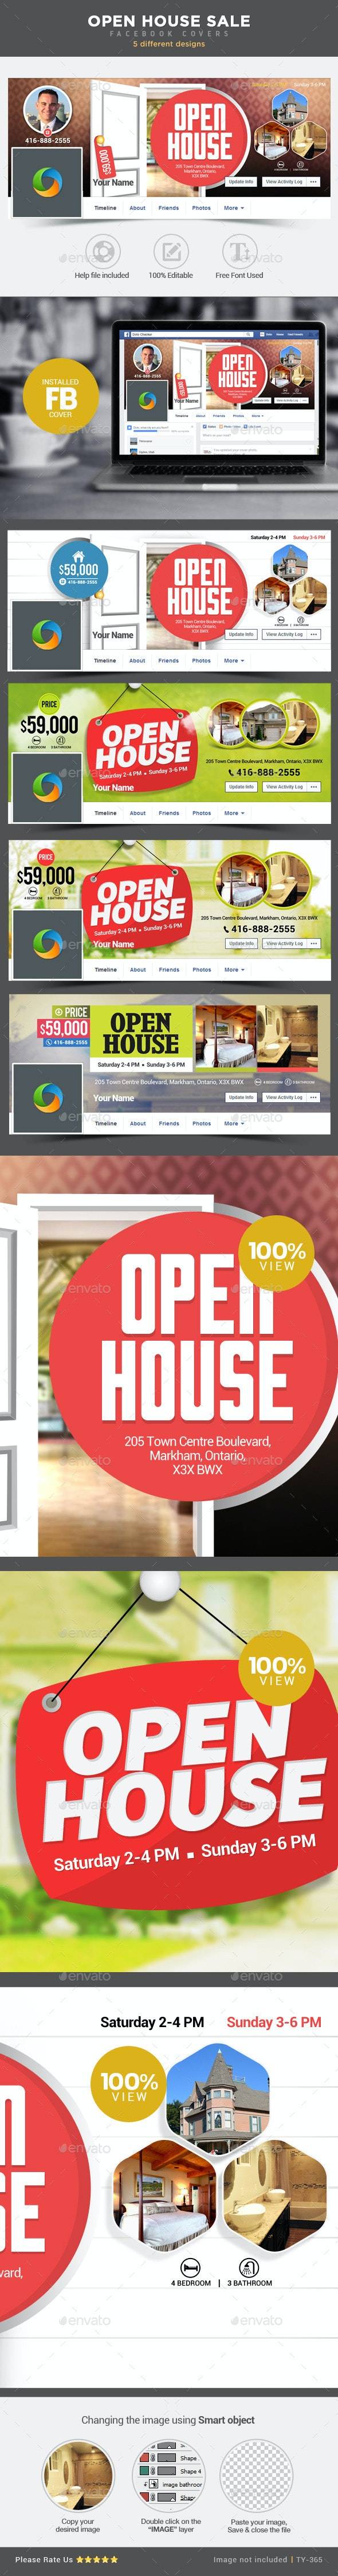 Real Estate Open House Facebook Covers - 5 Designs - Facebook Timeline Covers Social Media